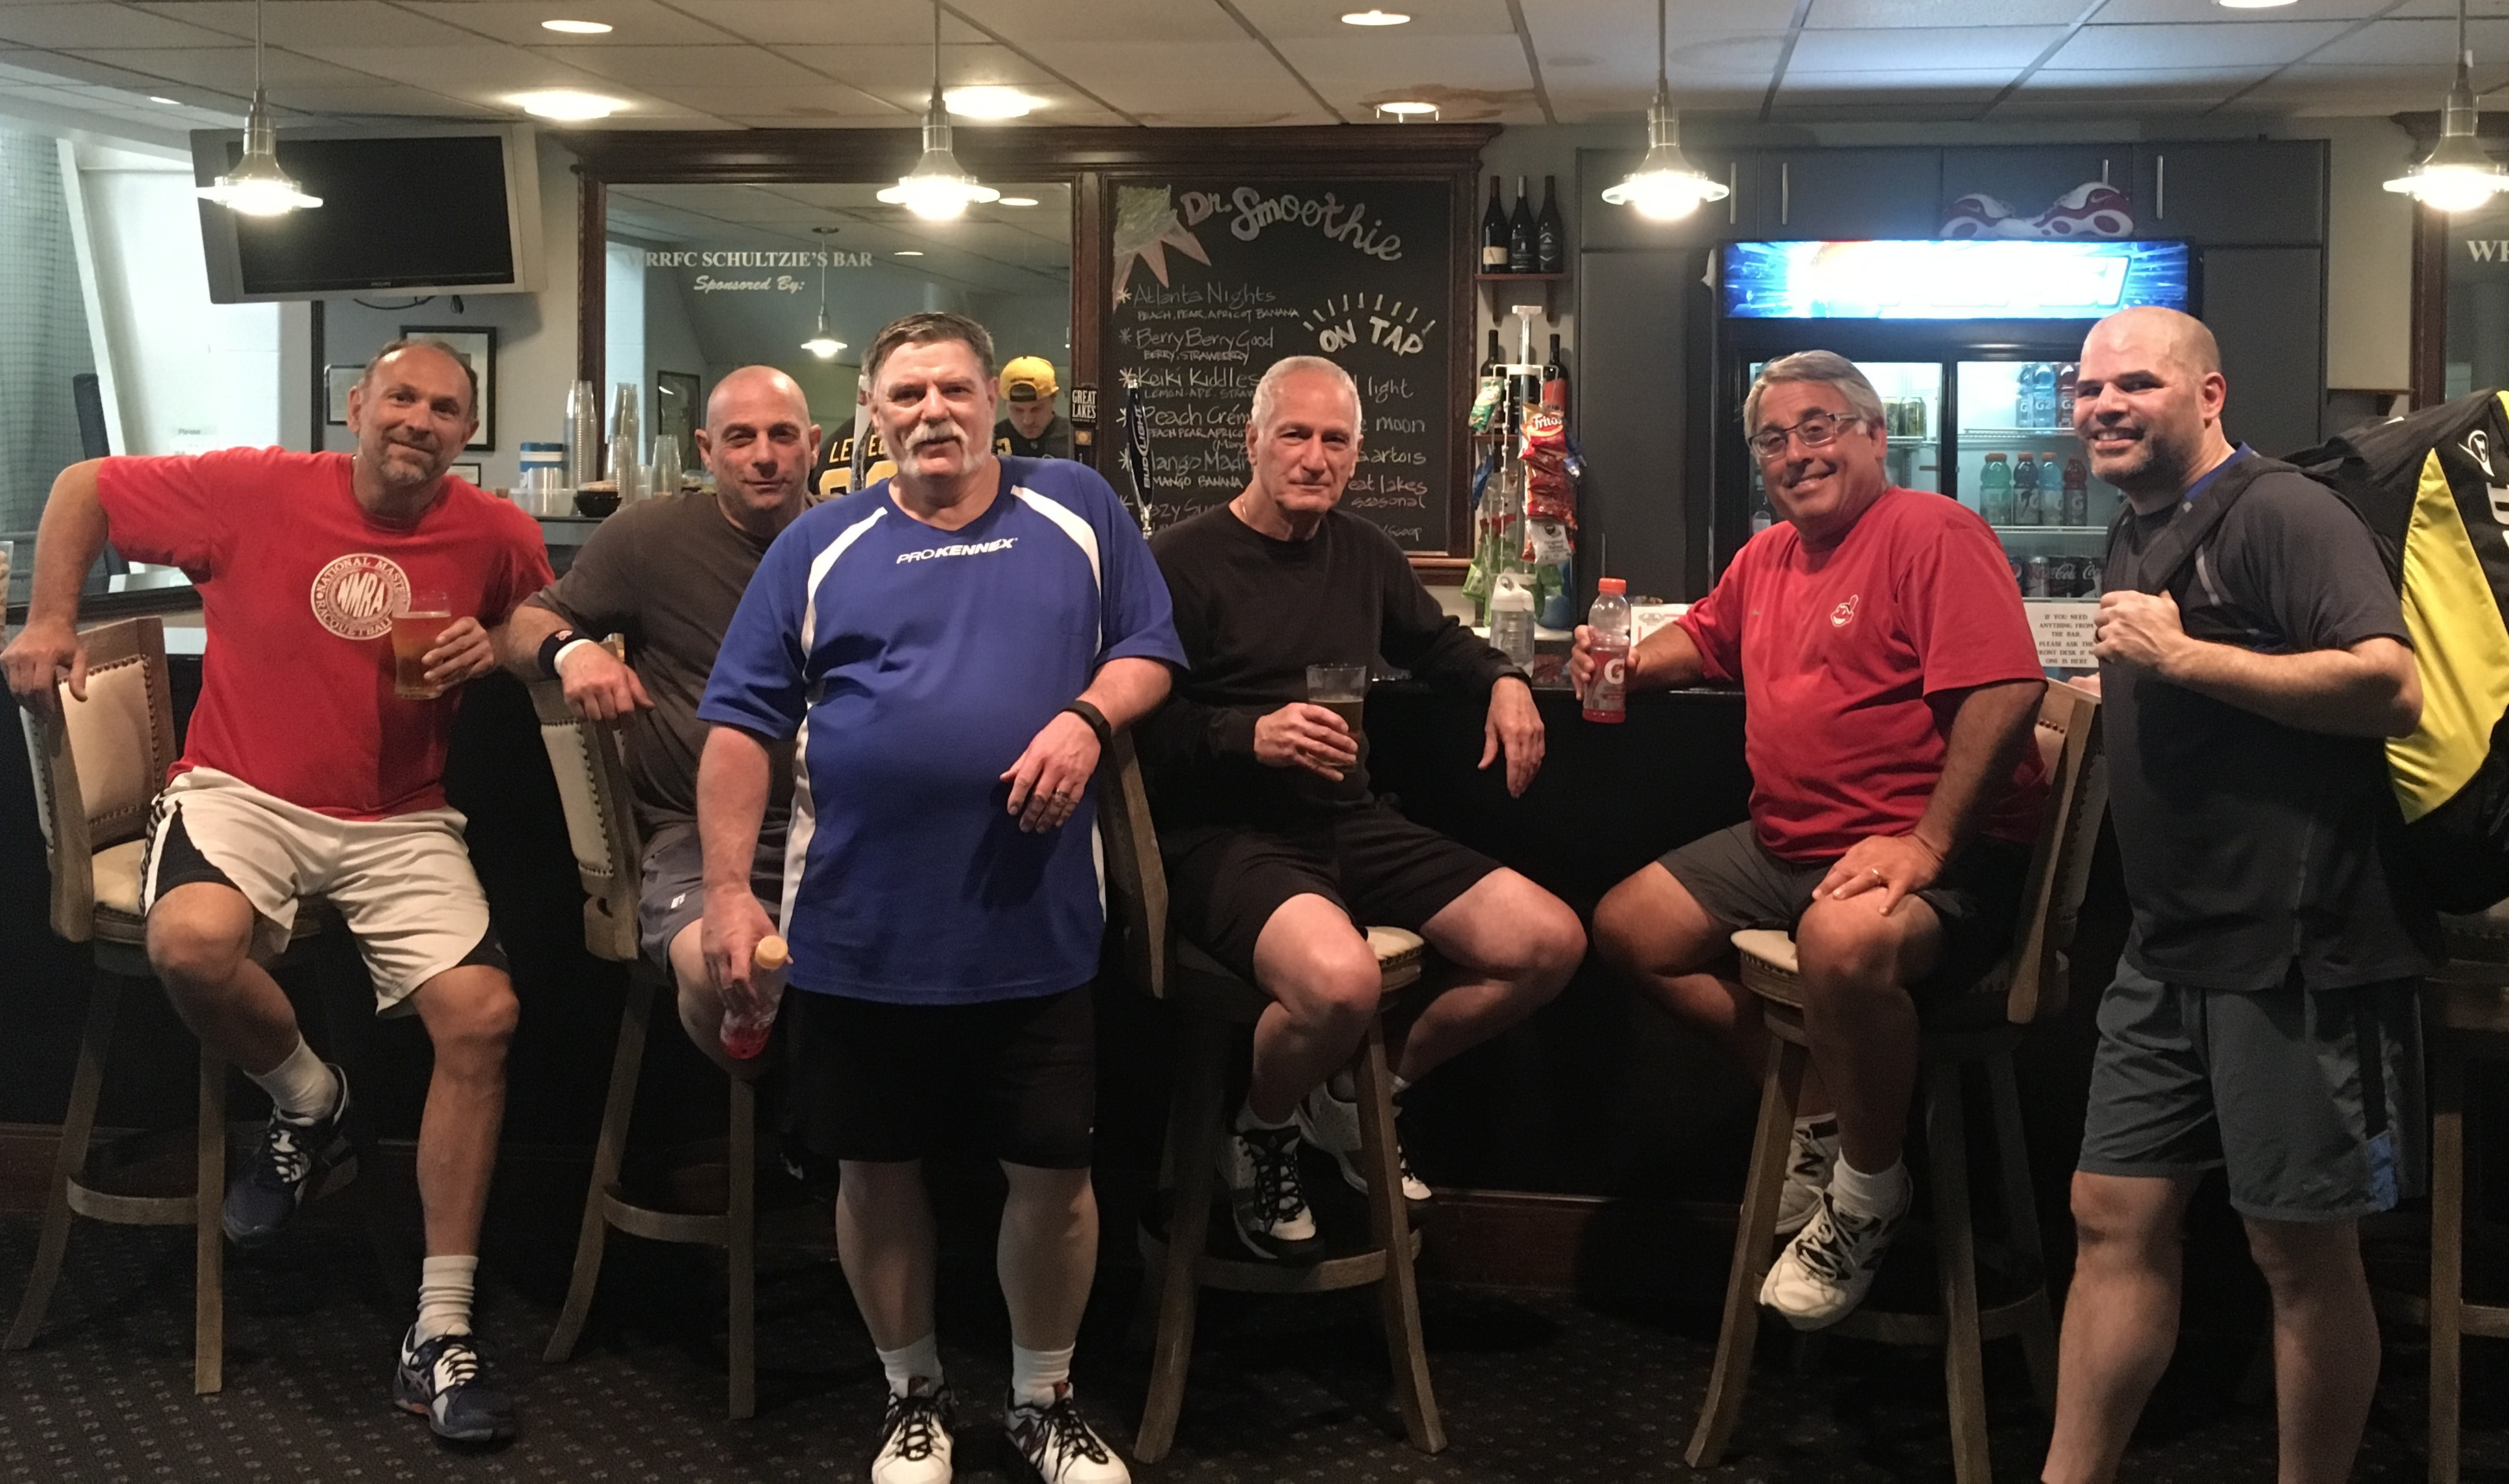 Racquetball Members Relaxing at Schultzie's Lounge